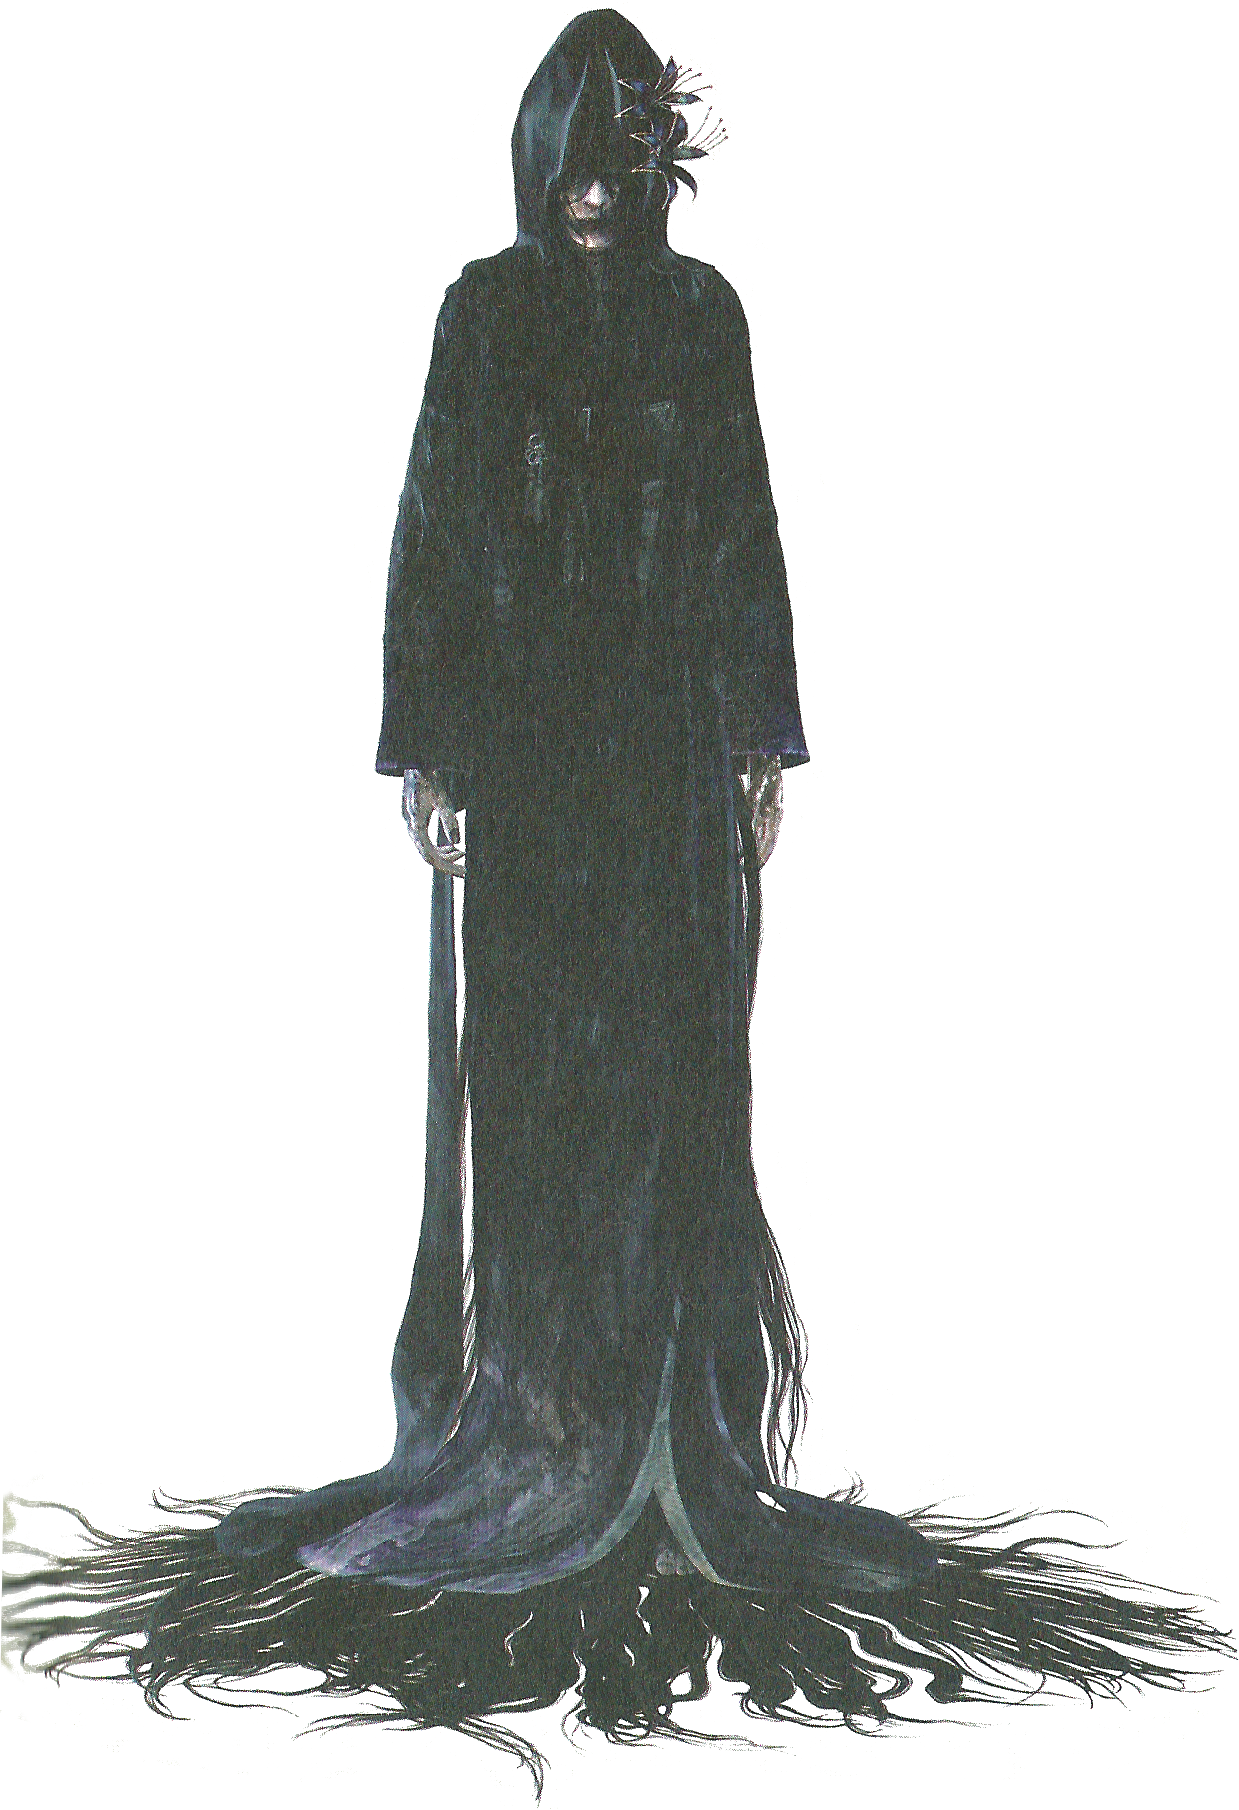 Image - KurosawaOuse.png | Fatal Frame Wiki | FANDOM powered by Wikia